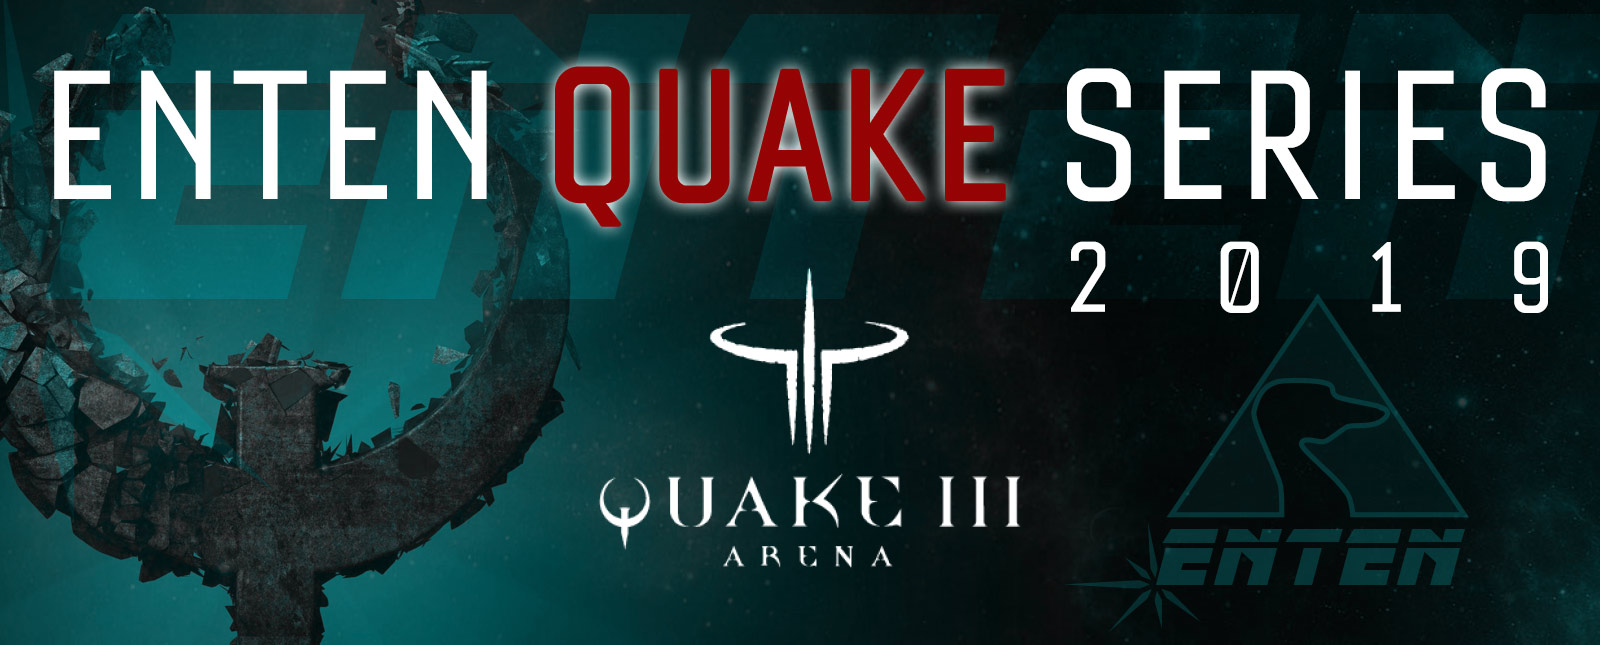 Haus Enten : Quake Series 2019